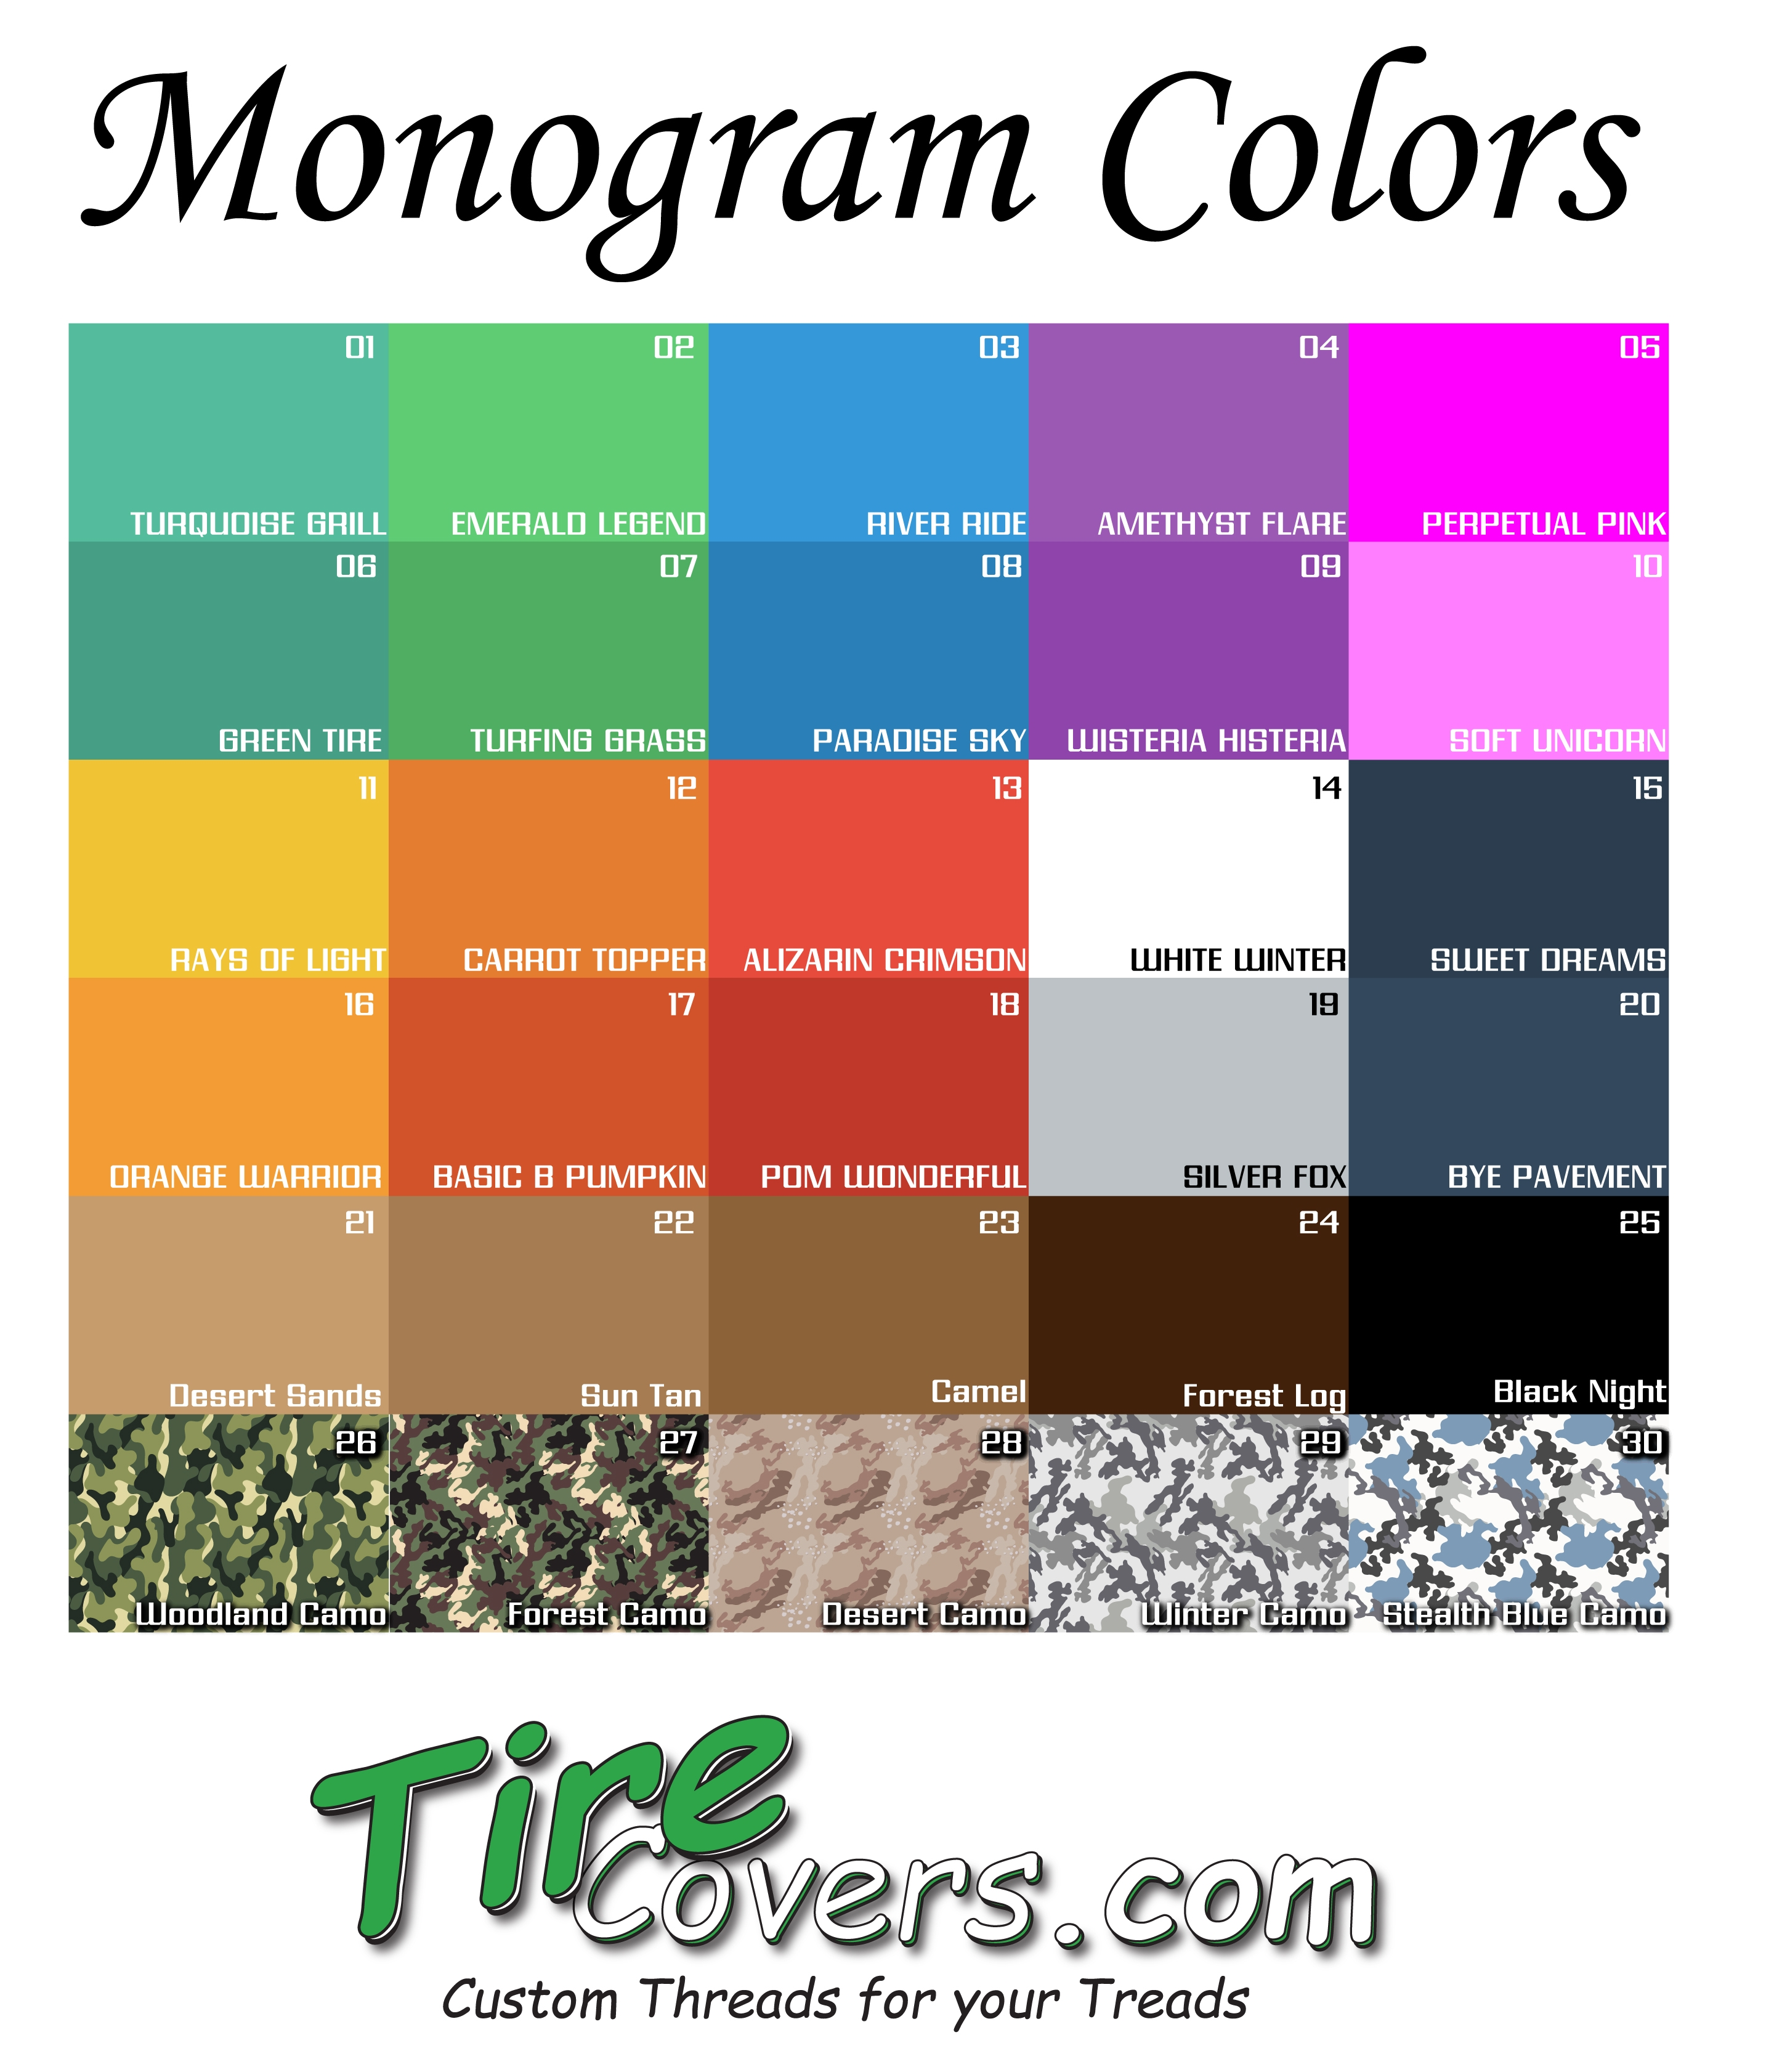 Monogram Color Chart for Tire Covers